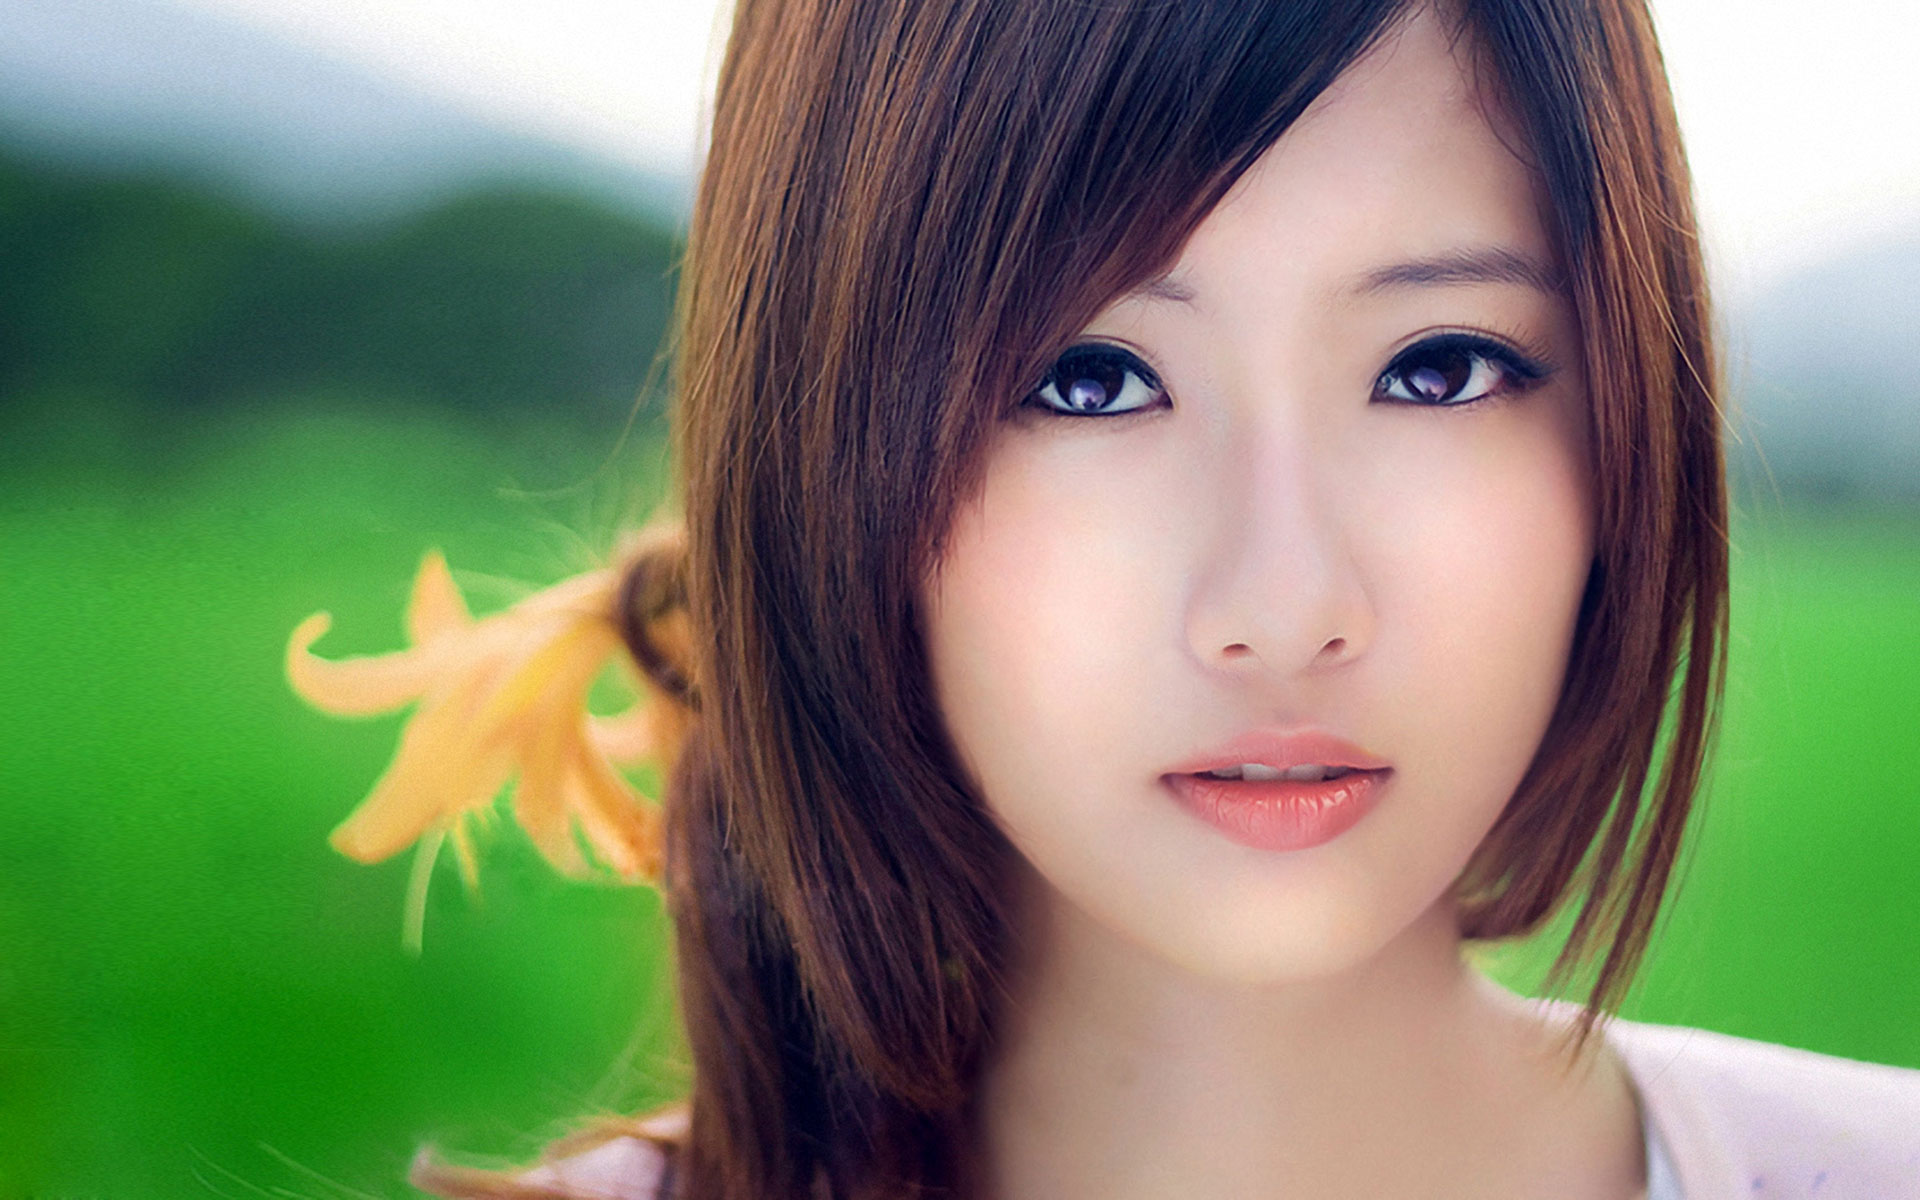 girl wallpaper 12 - photo #19